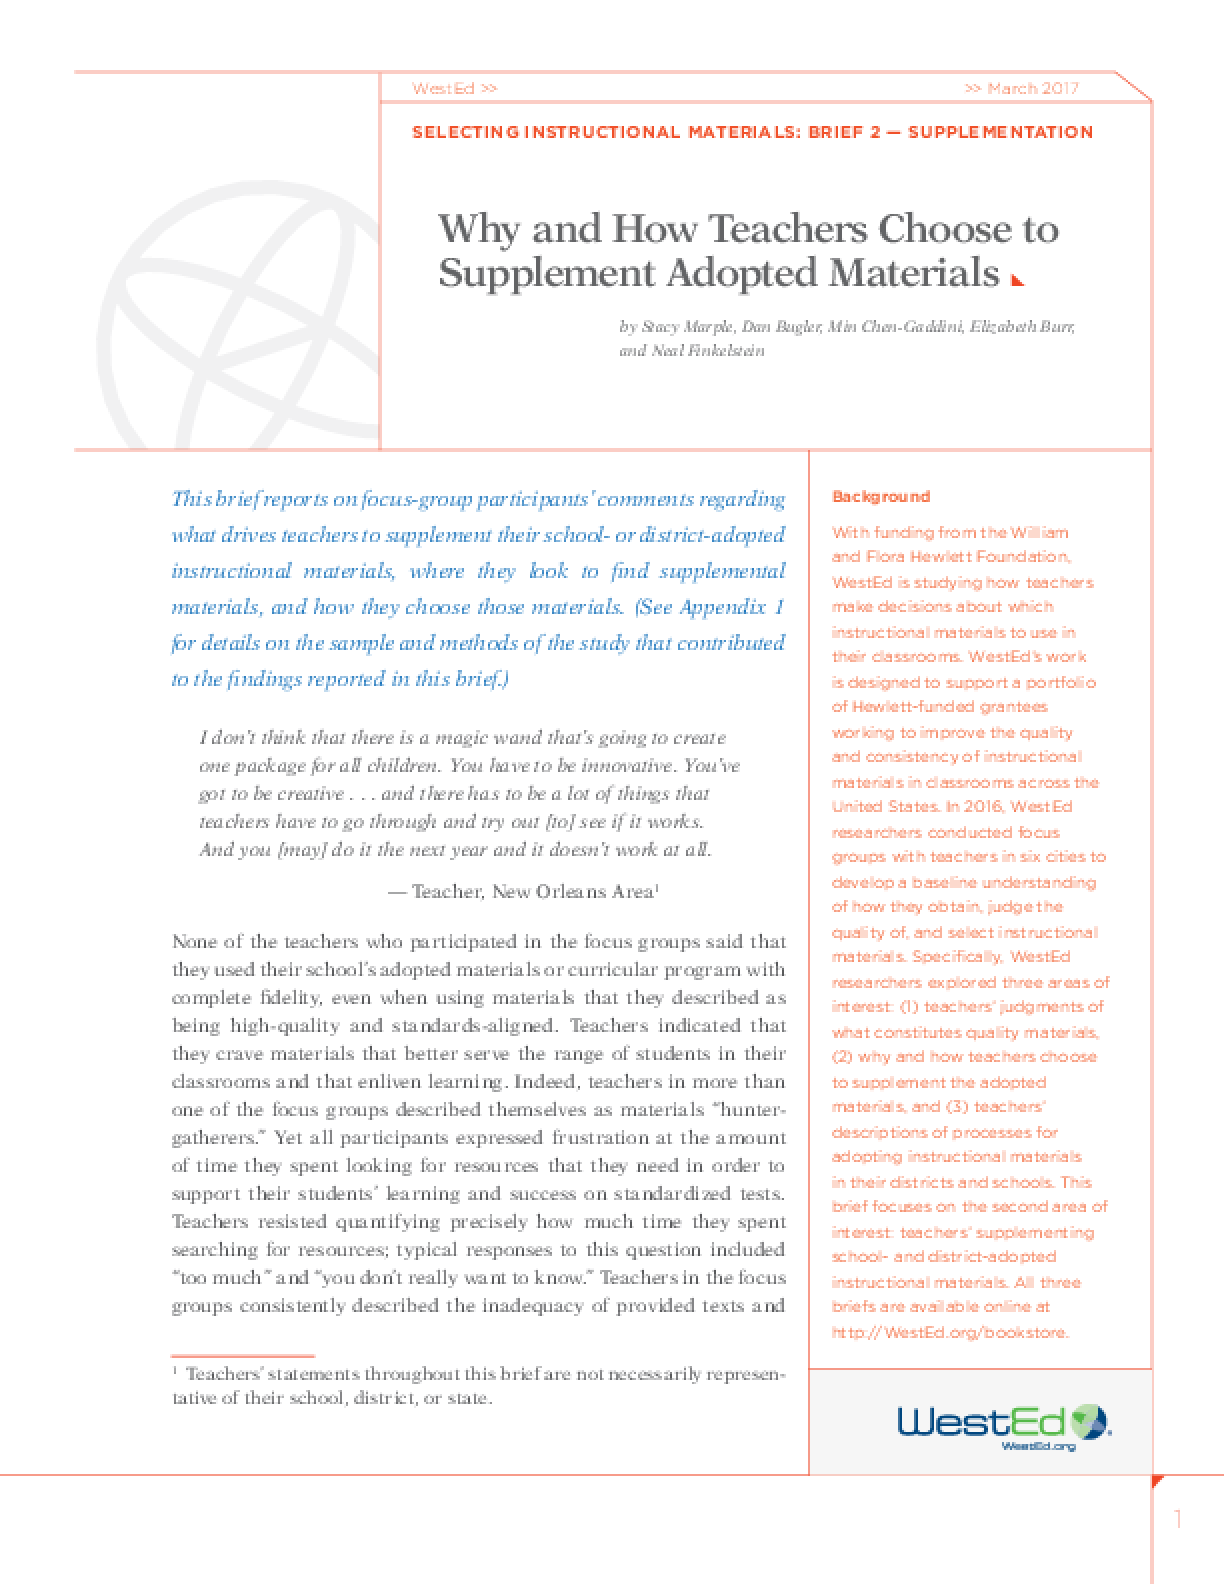 Why and How Teachers Choose to Supplement Adopted Materials: Selecting Instructional Materials, Brief 2 - Supplementation